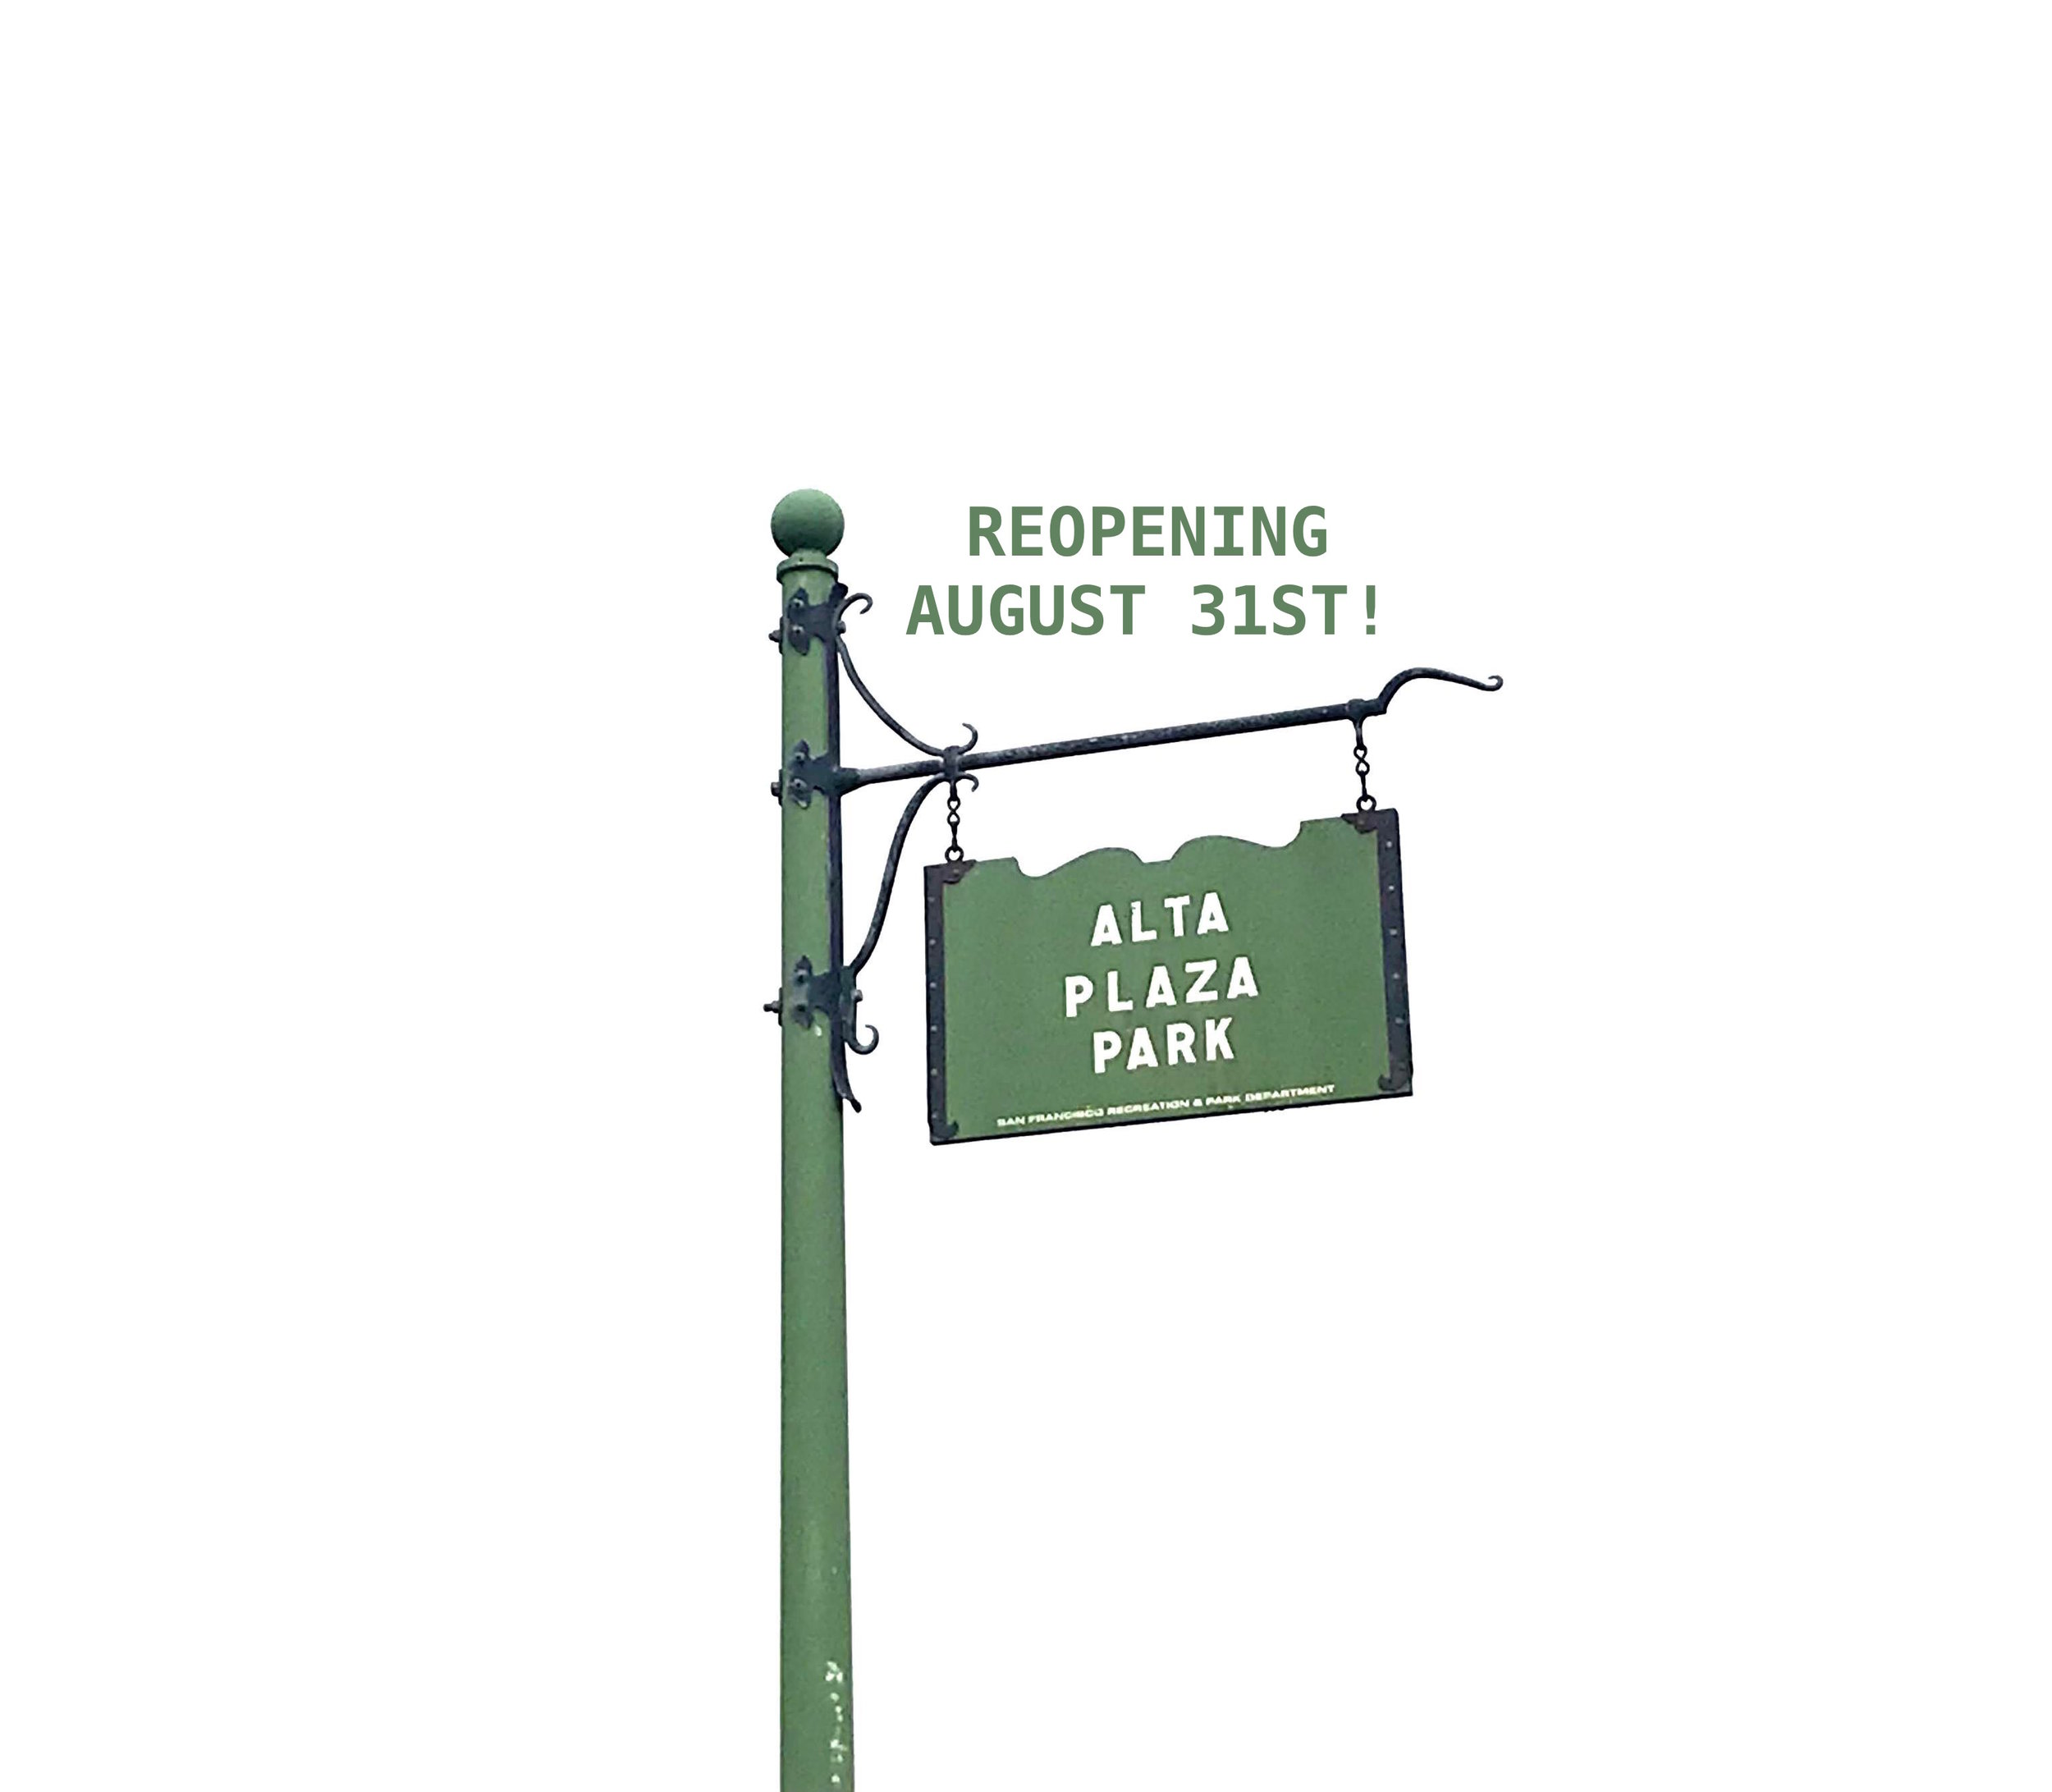 reopening with alta plaza park sign.jpg